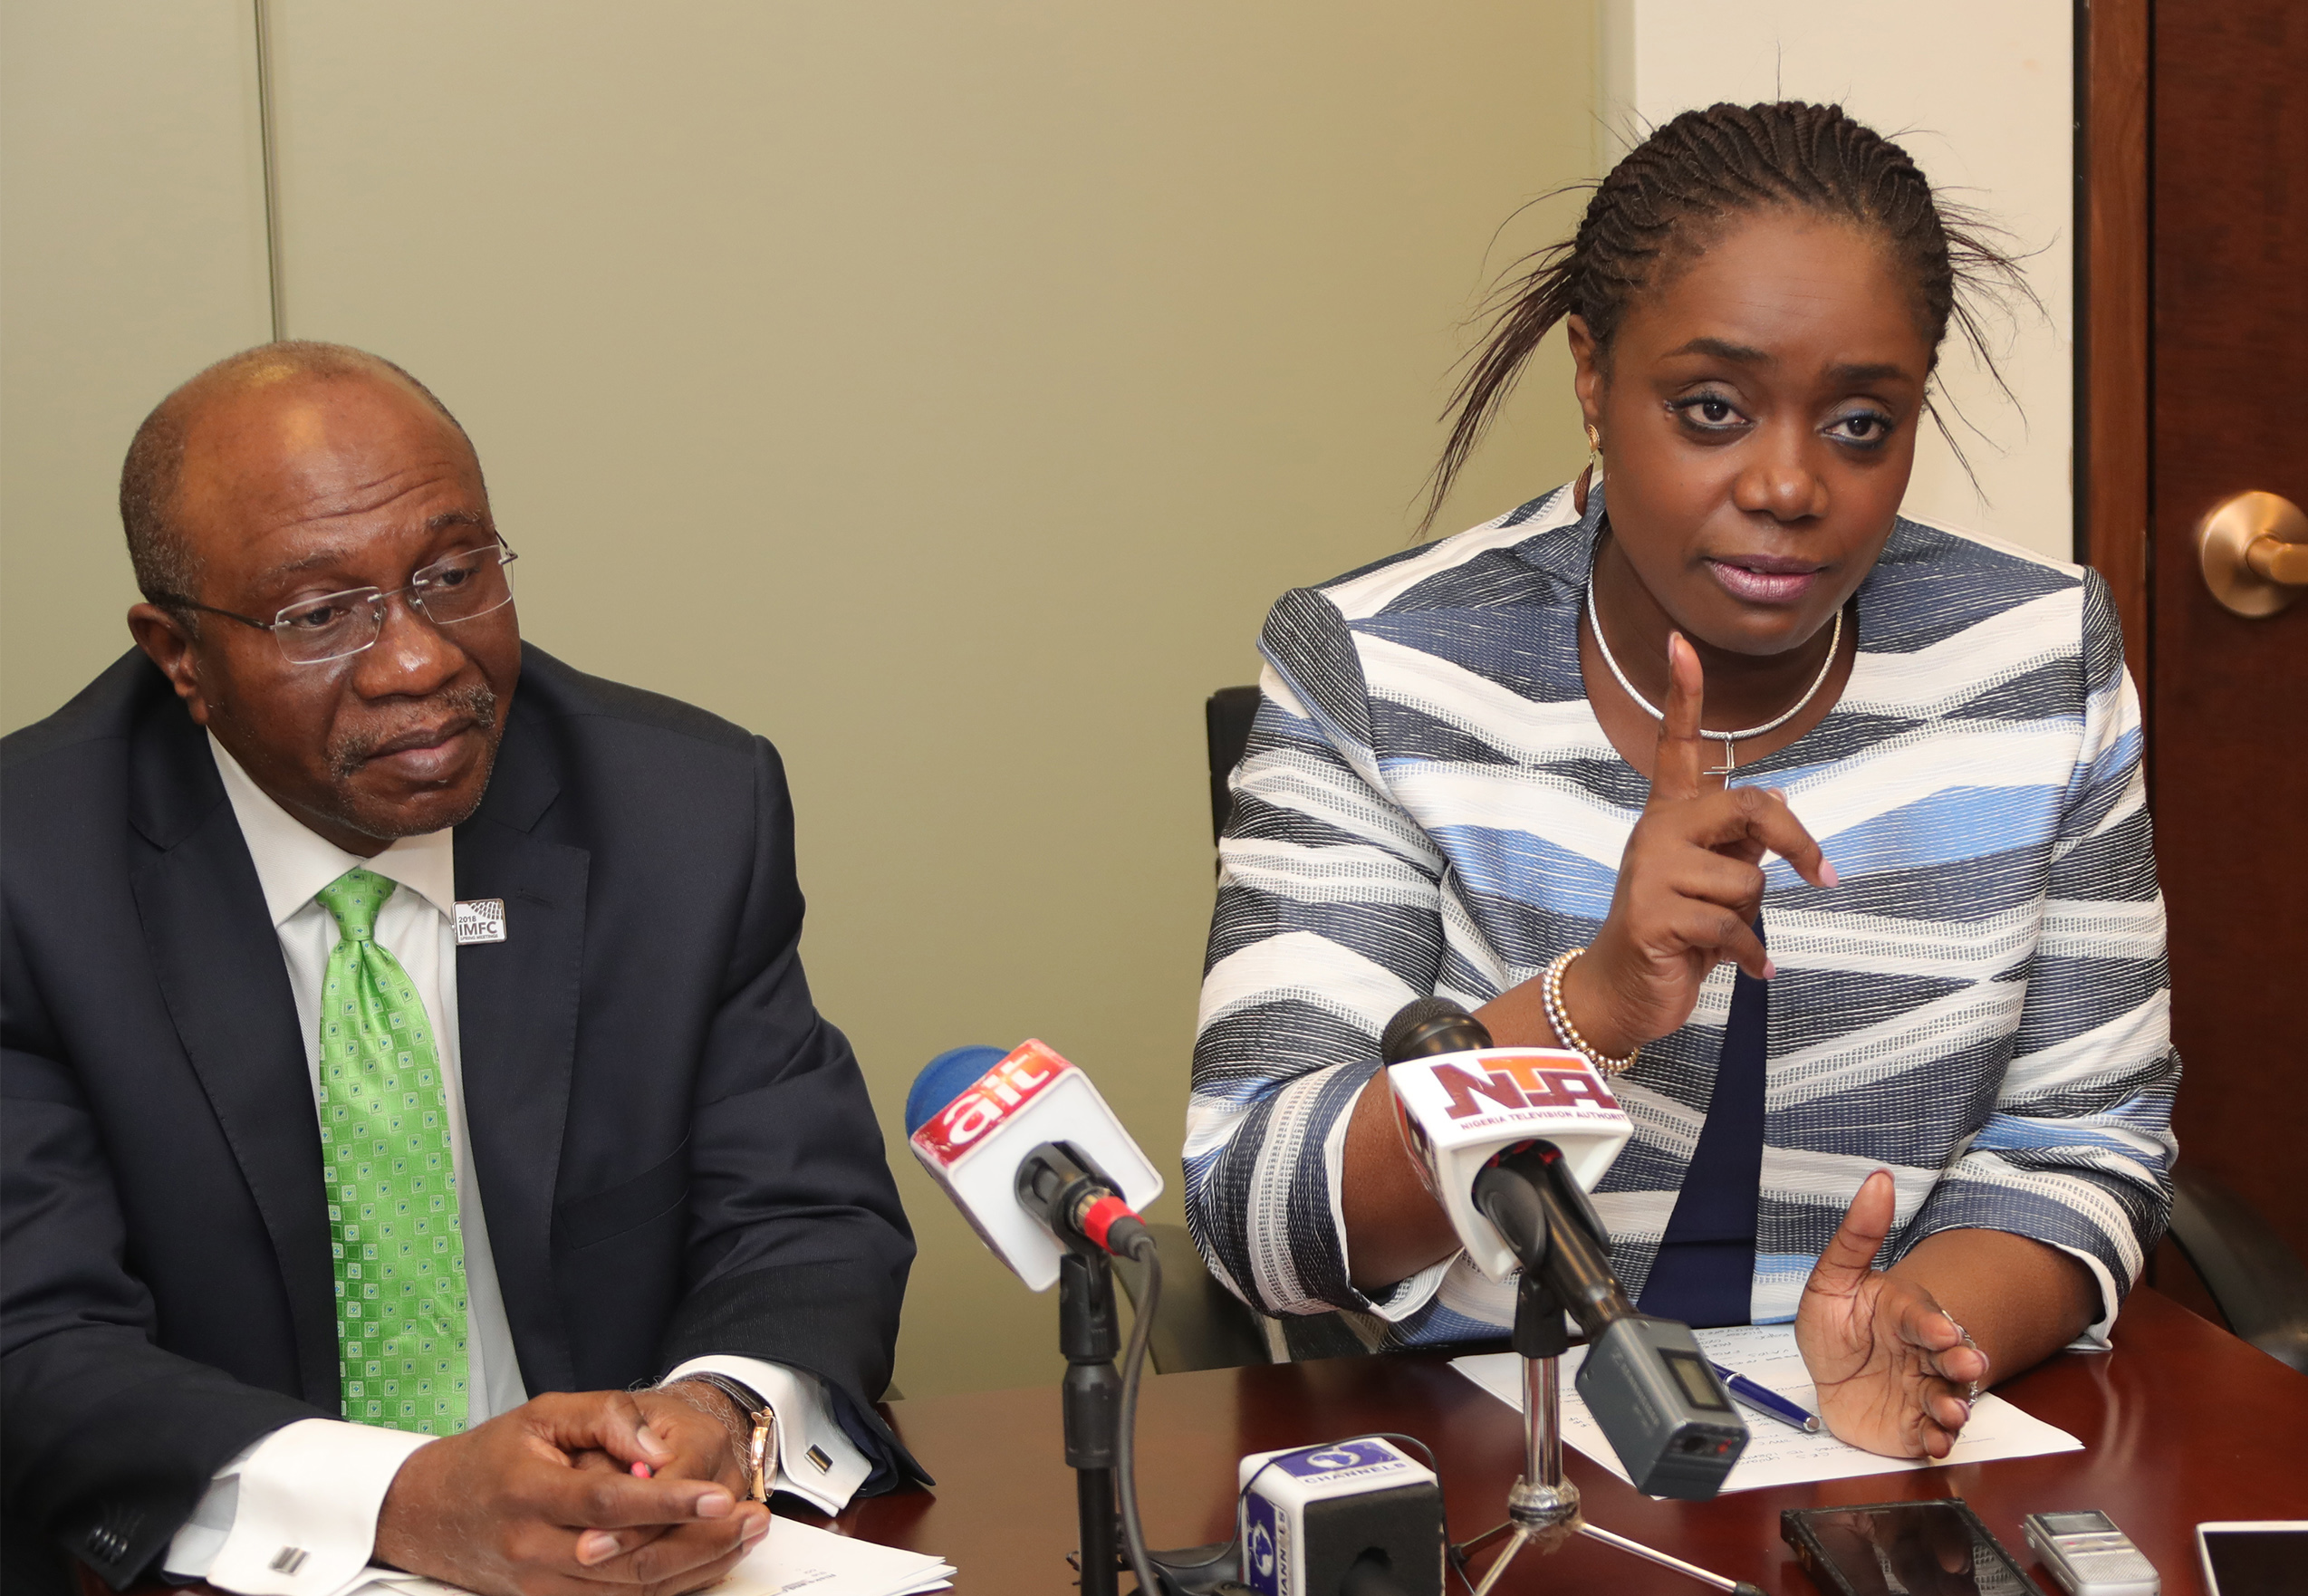 CBN GOV AND FIN MIN BRIEF PRESS. 3. L-R;  The Central Bank Governor, Mr Godwin Emefiele, Minister of Finance Mr Kemi Adeosun during a press briefing a successful outing at the International Monetary Fund and World Bank Spring Meetings held in Washington DC, APRIL 22 2018.